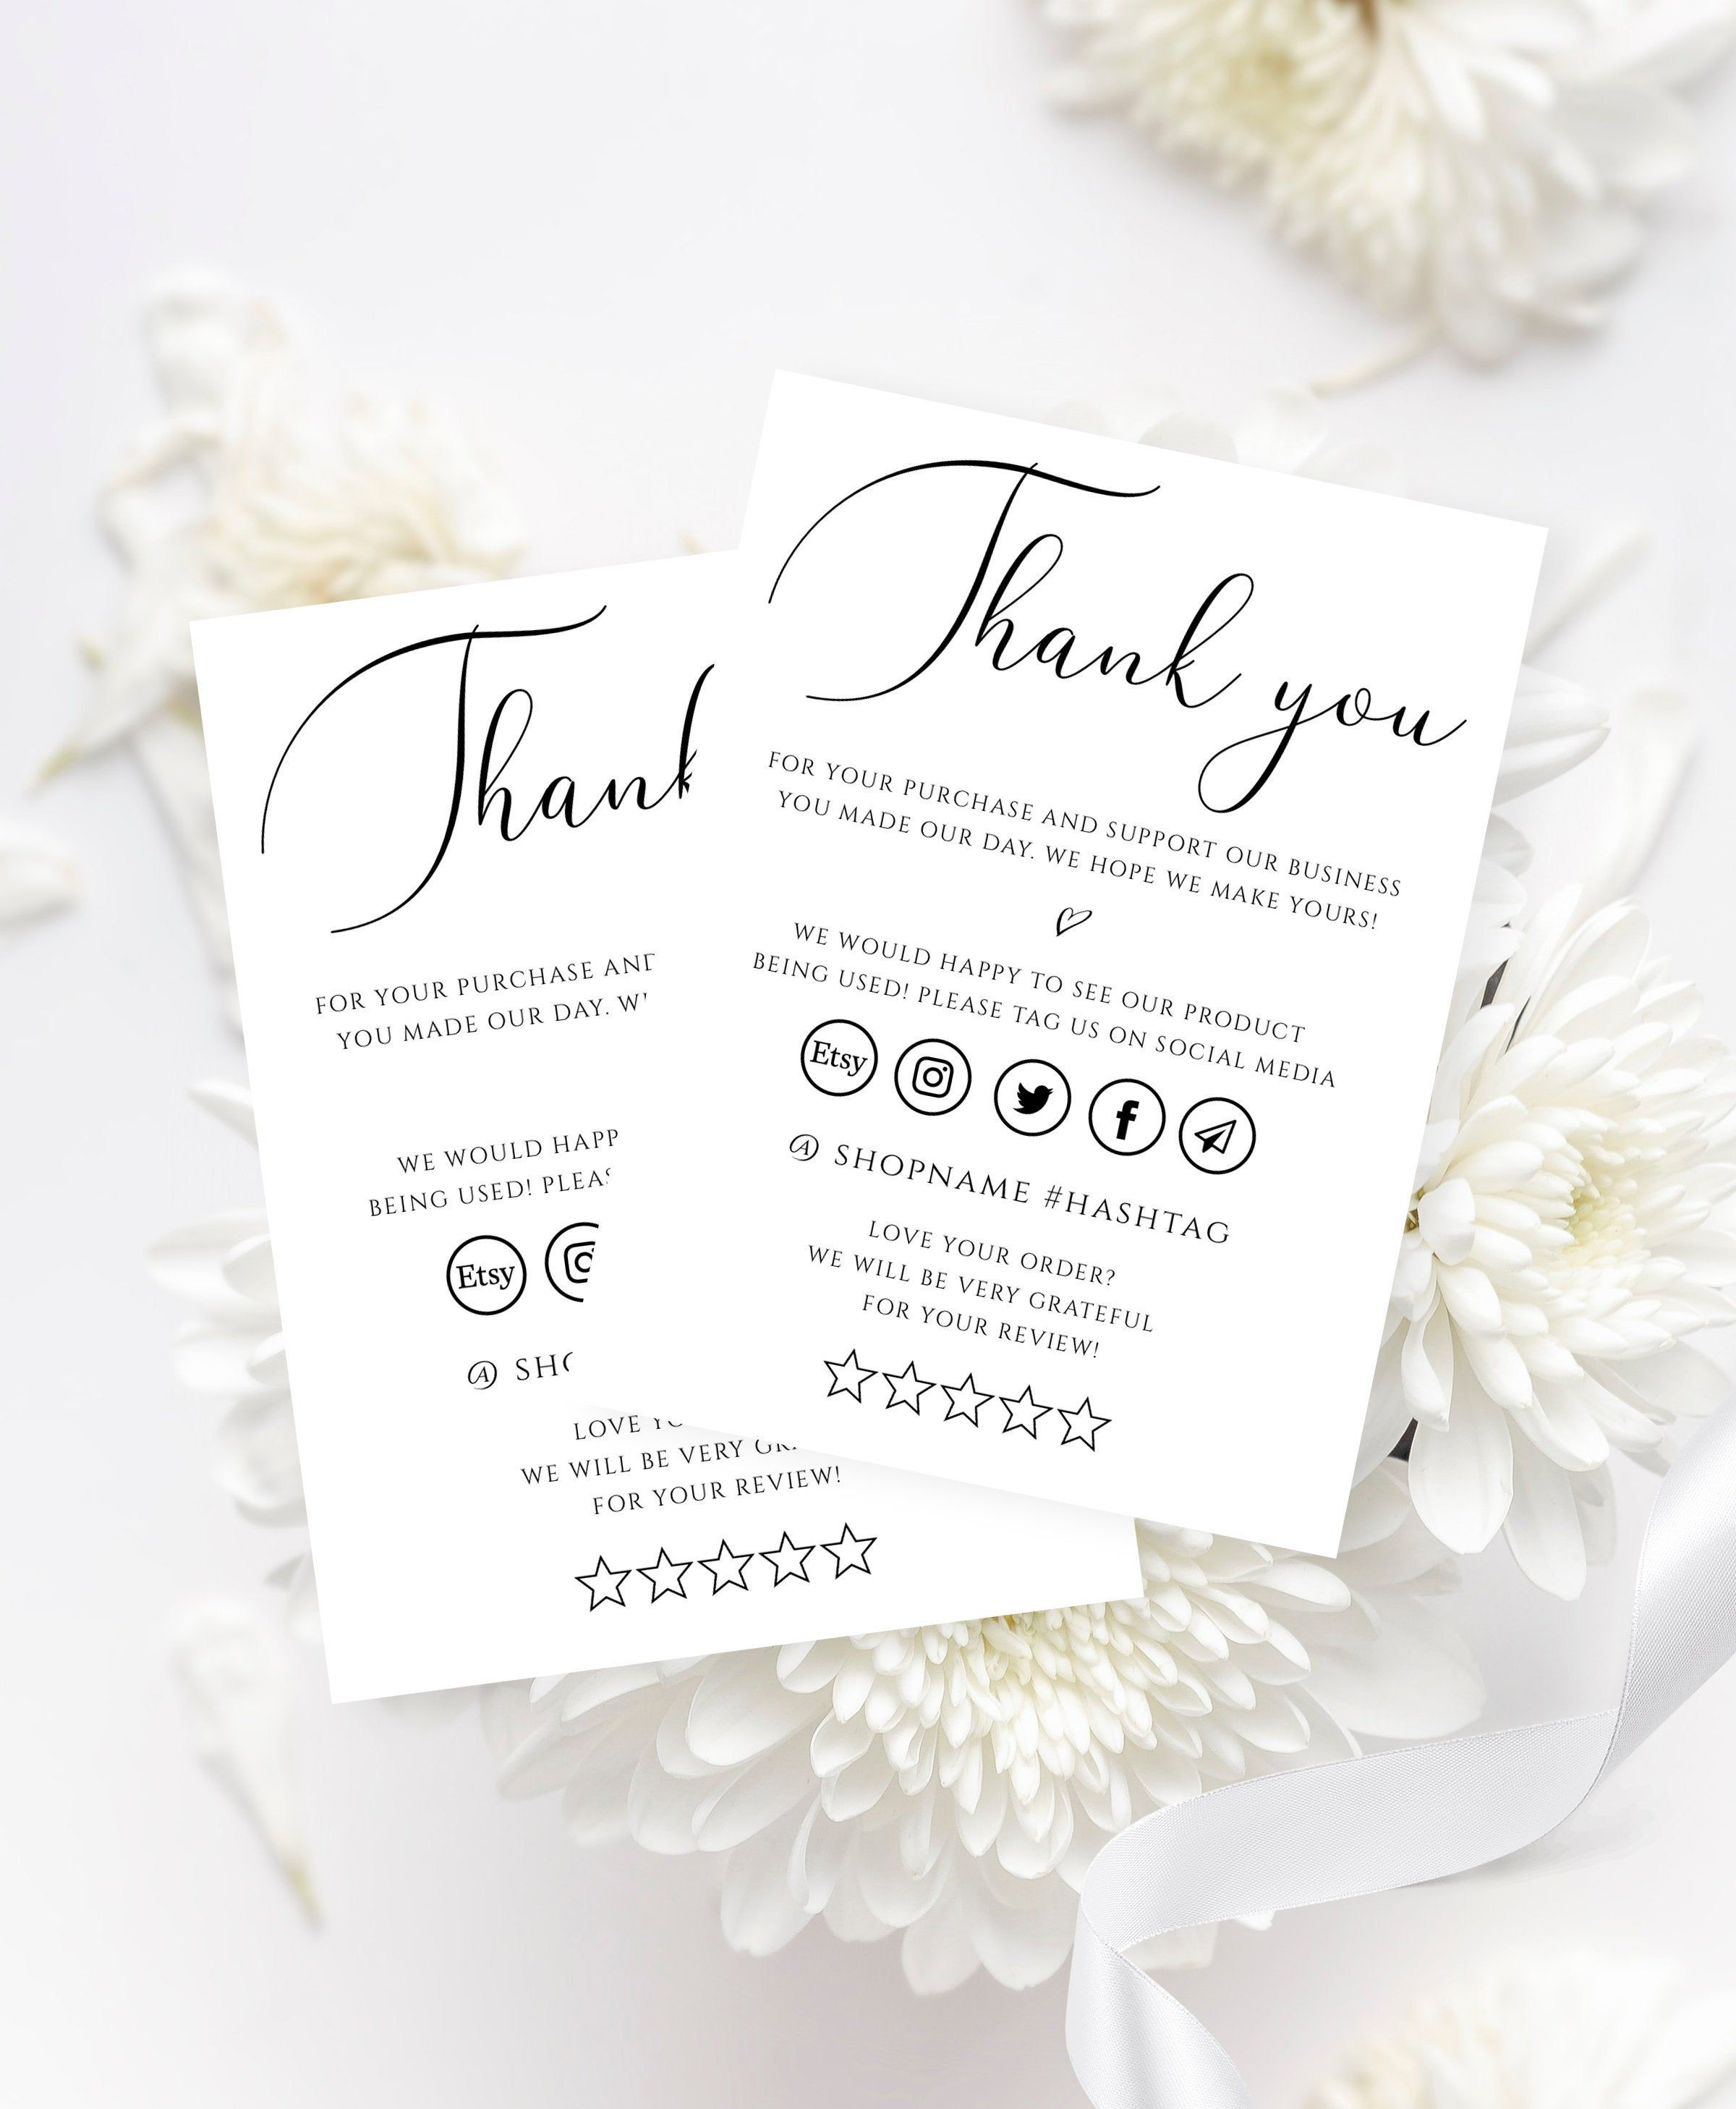 Thank You Business Card 20 Editable Template Etsy Seller   Etsy ...